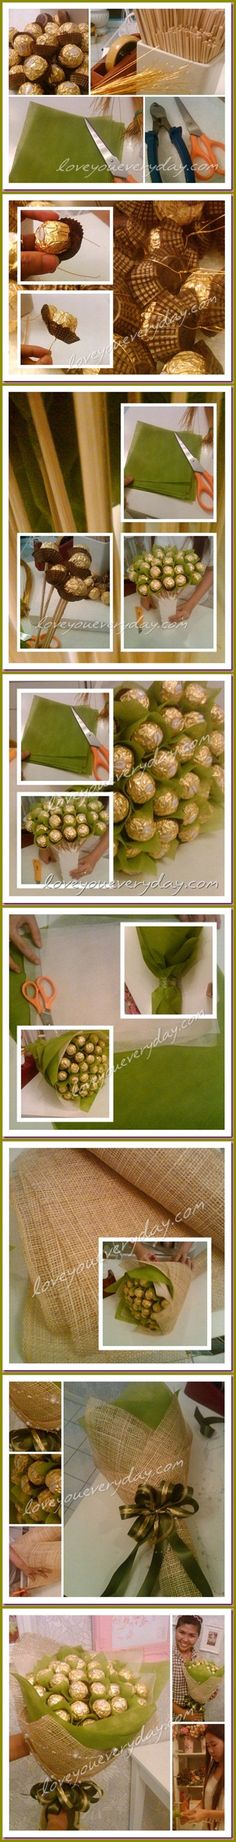 Ferrero Rocher Bouquet:) Ferrero Rocher, Toothpicks, green tissue paper squares, green tissue paper sheets, sheet of burlap & ribbon:) Good for housewarmings, parties, XMAS or holiday gifts...